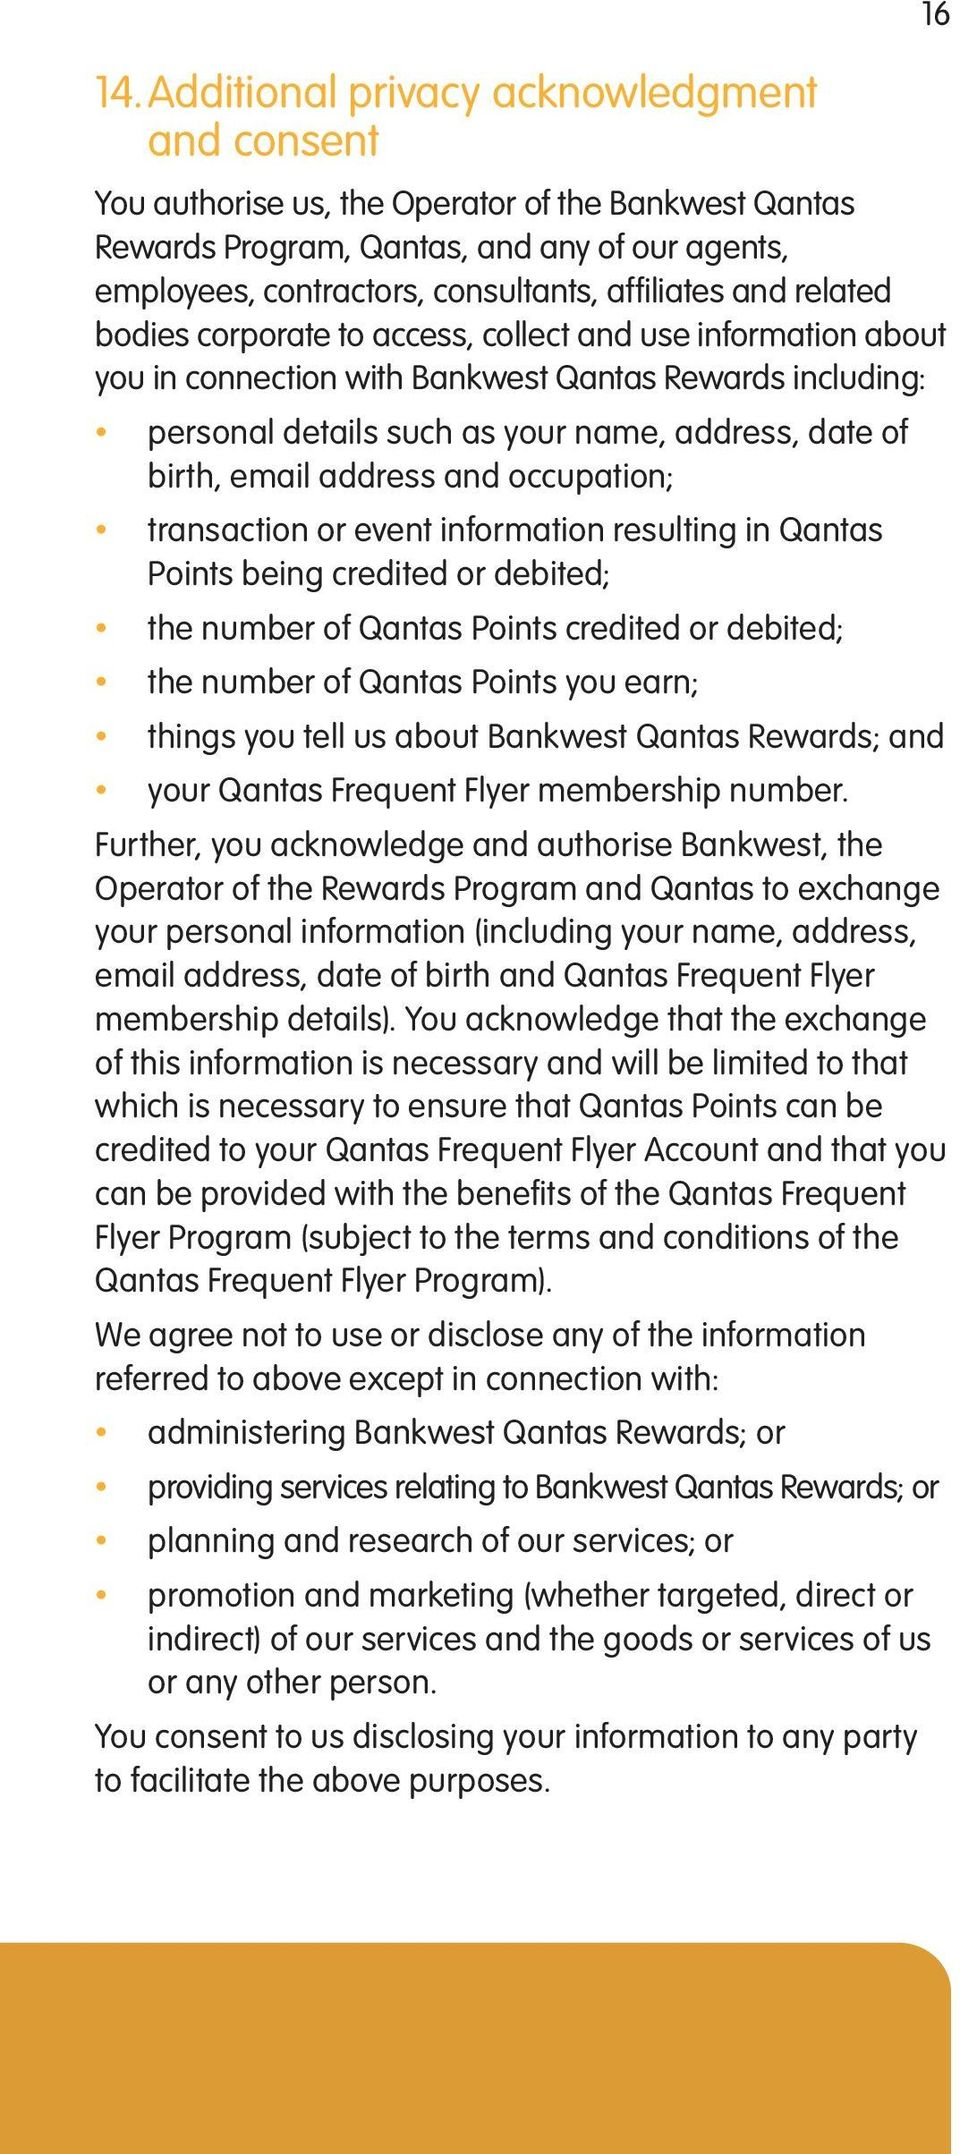 birth, email address and occupation; transaction or event information resulting in Qantas Points being credited or debited; the number of Qantas Points credited or debited; the number of Qantas